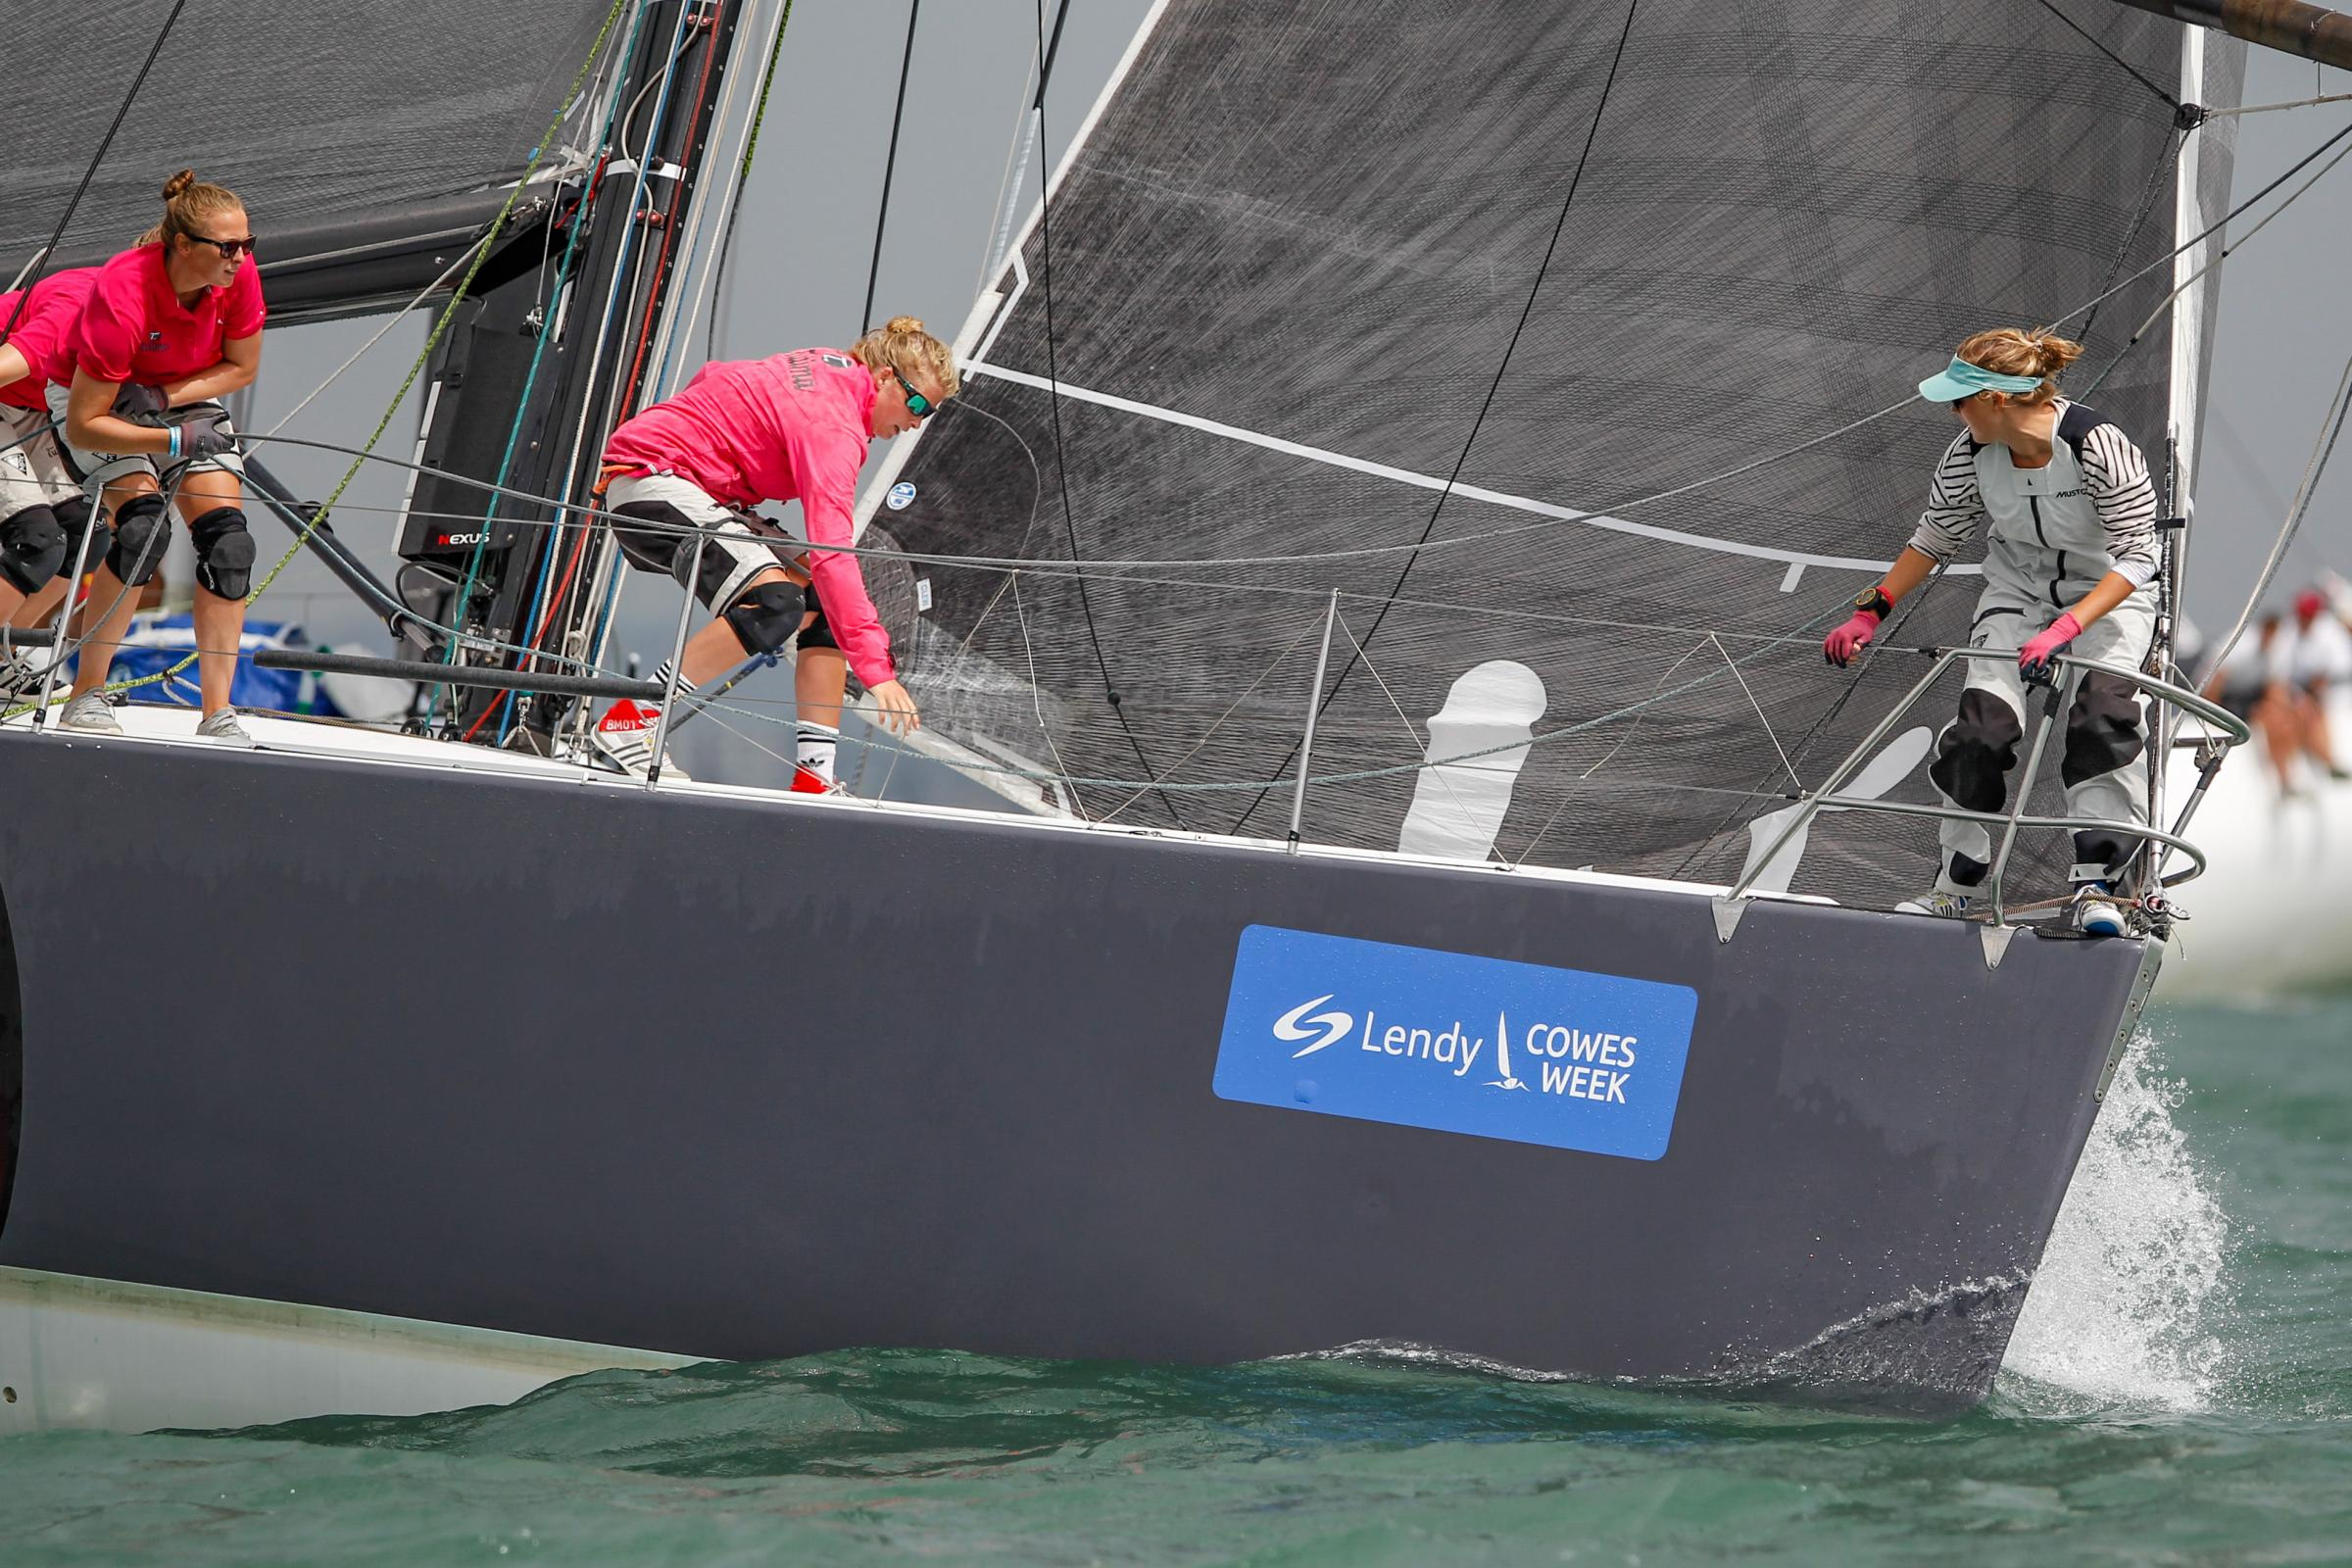 Action on board Tutima in IRC Class 1 during Ladies Day at Lendy Cowes Week. Photo: Paul Wyeth